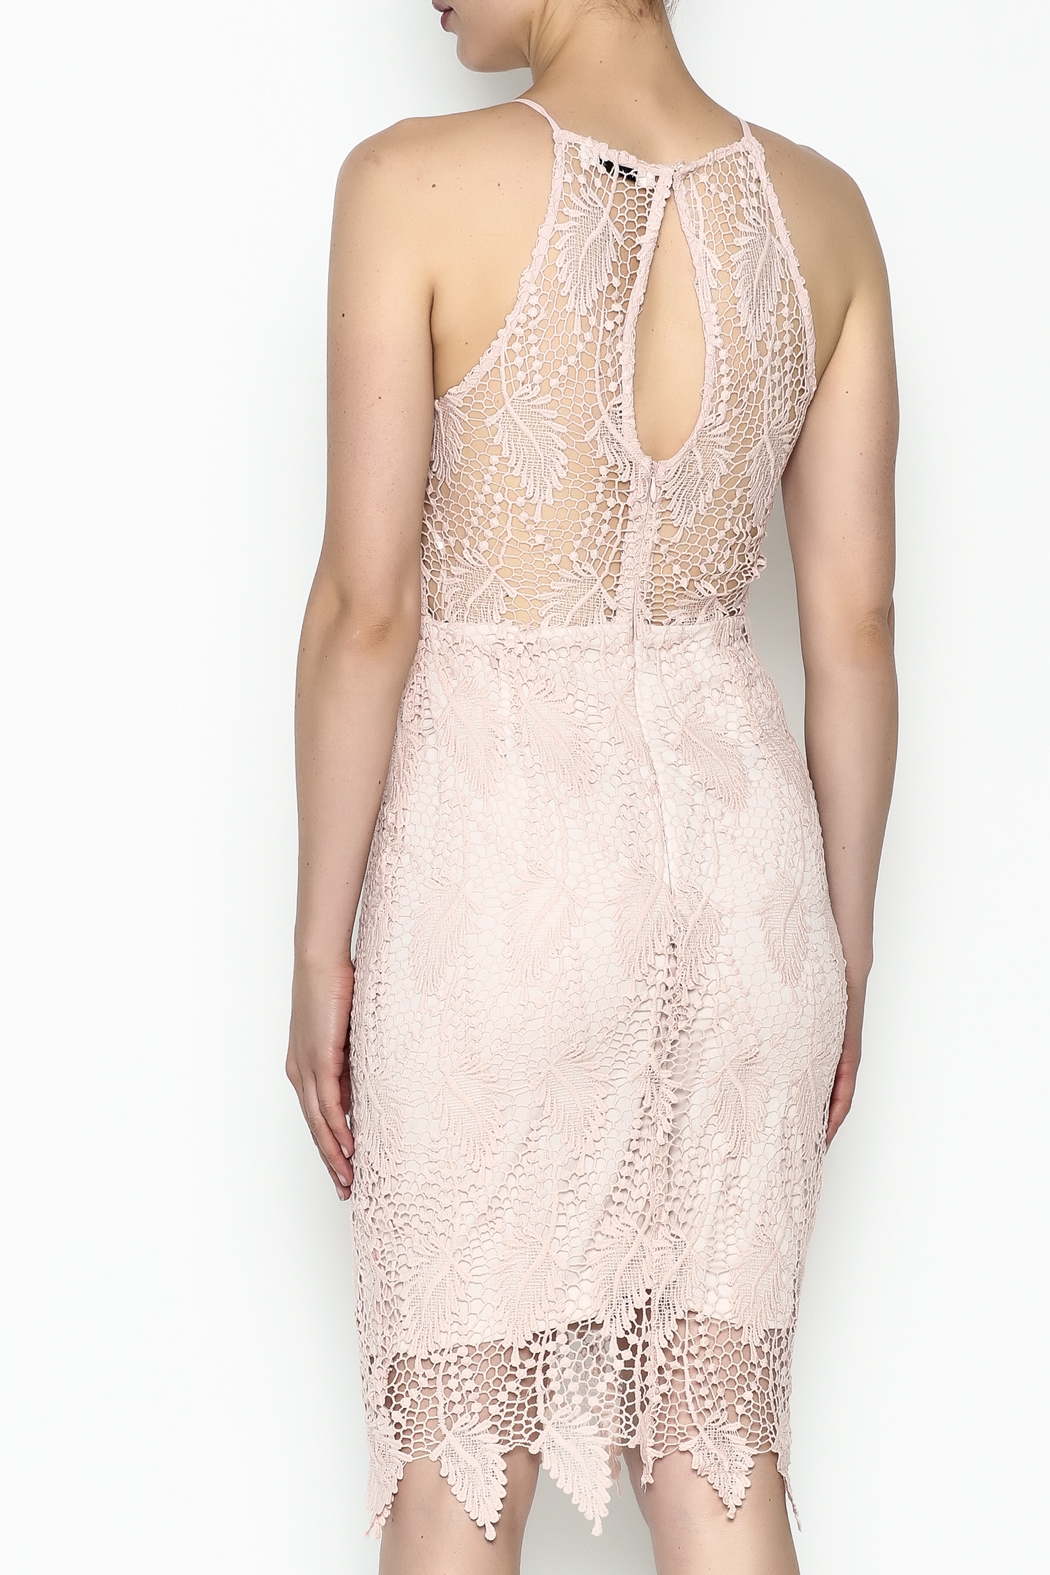 Ark & Co. Lace Bodycon Dress - Back Cropped Image